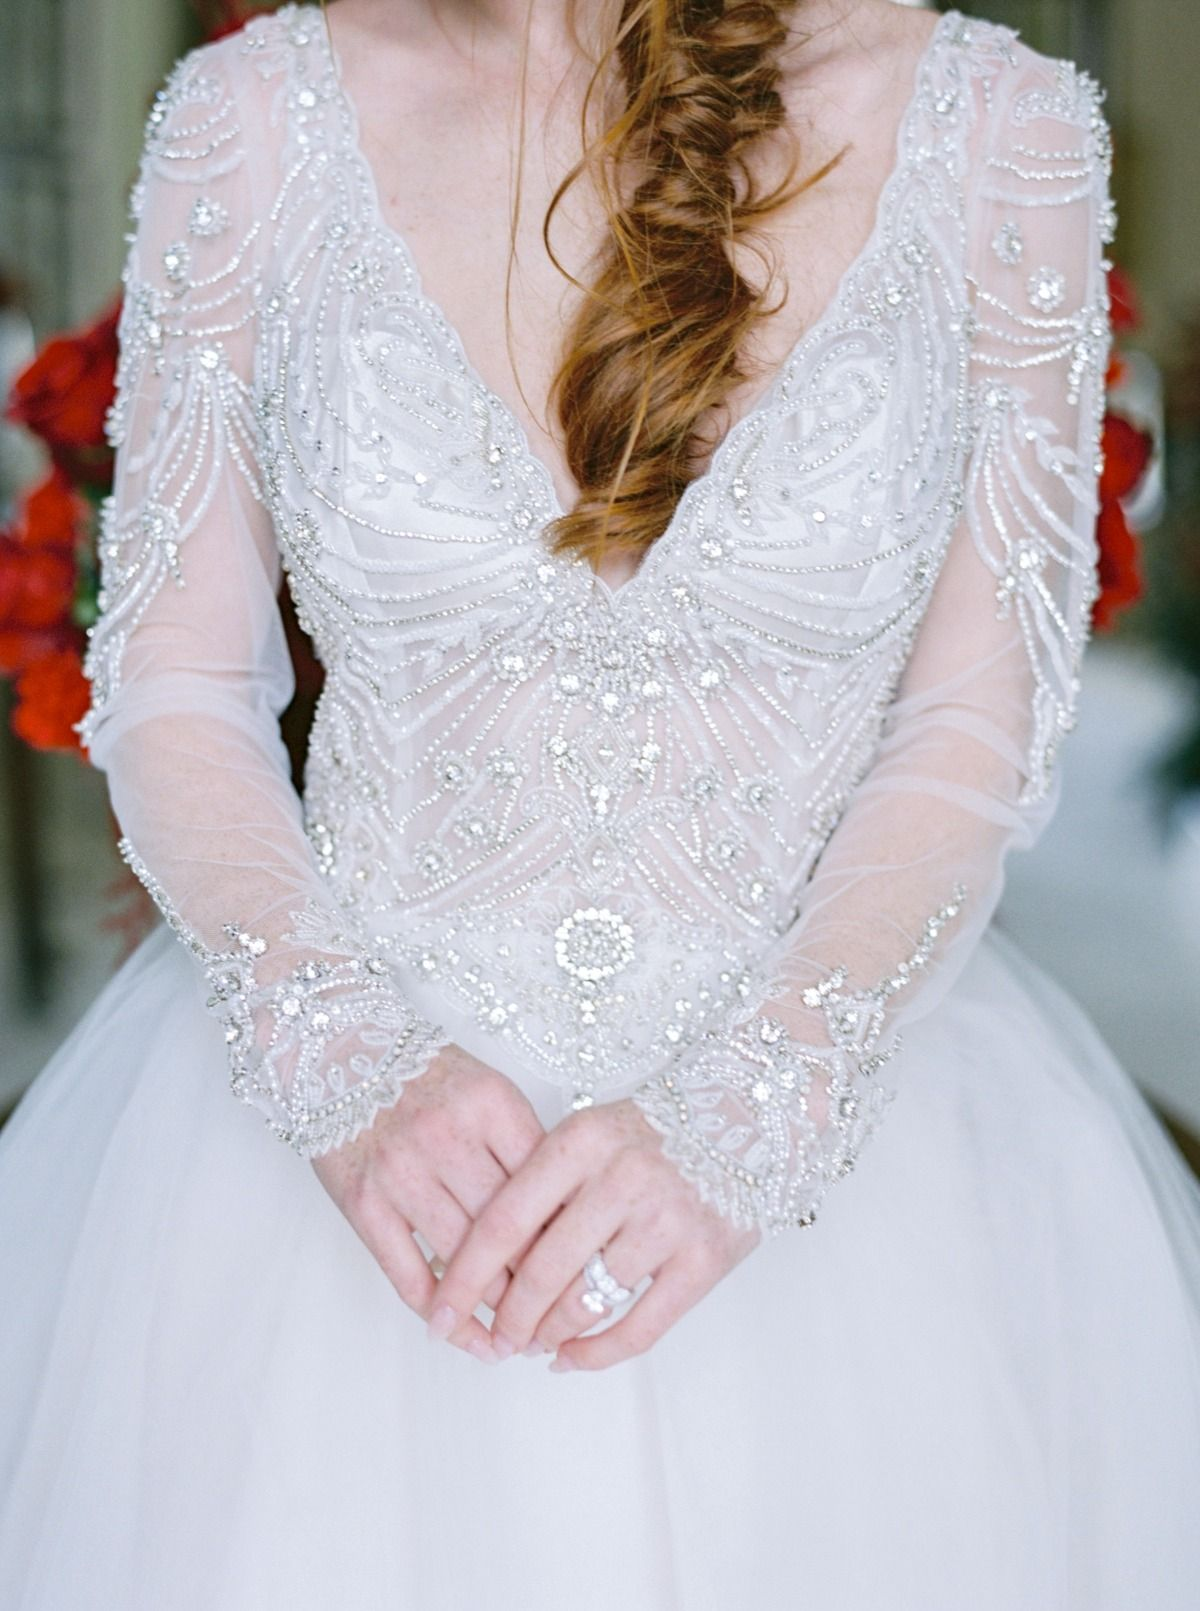 This Christmas Bridal Shoot Will Inspire Your Winter Wedding